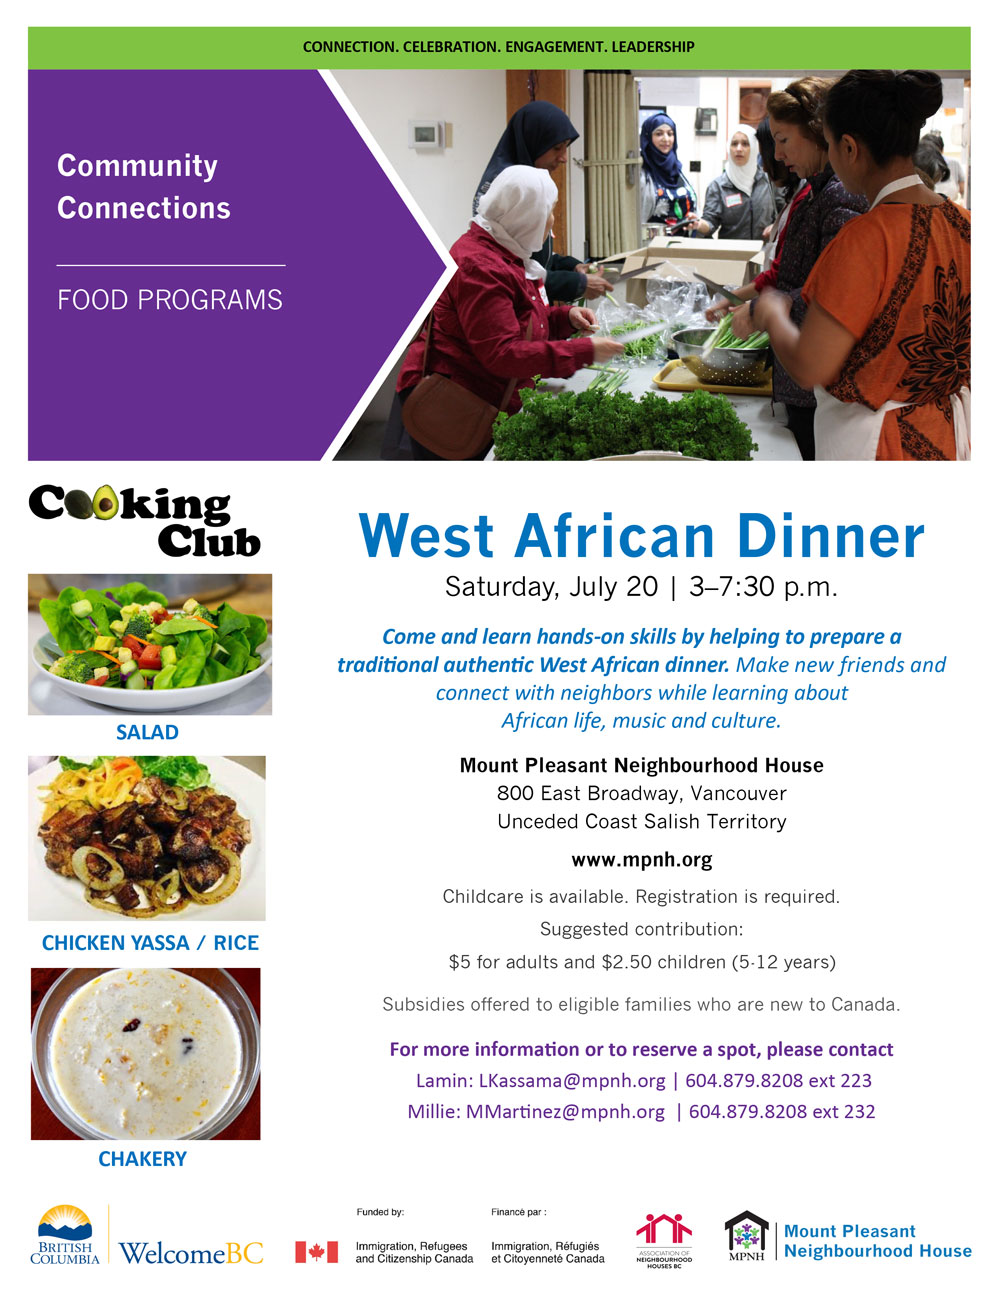 An image of the poster with event details, featuring a photo of people working together and preparing vegetables in the kitchen.